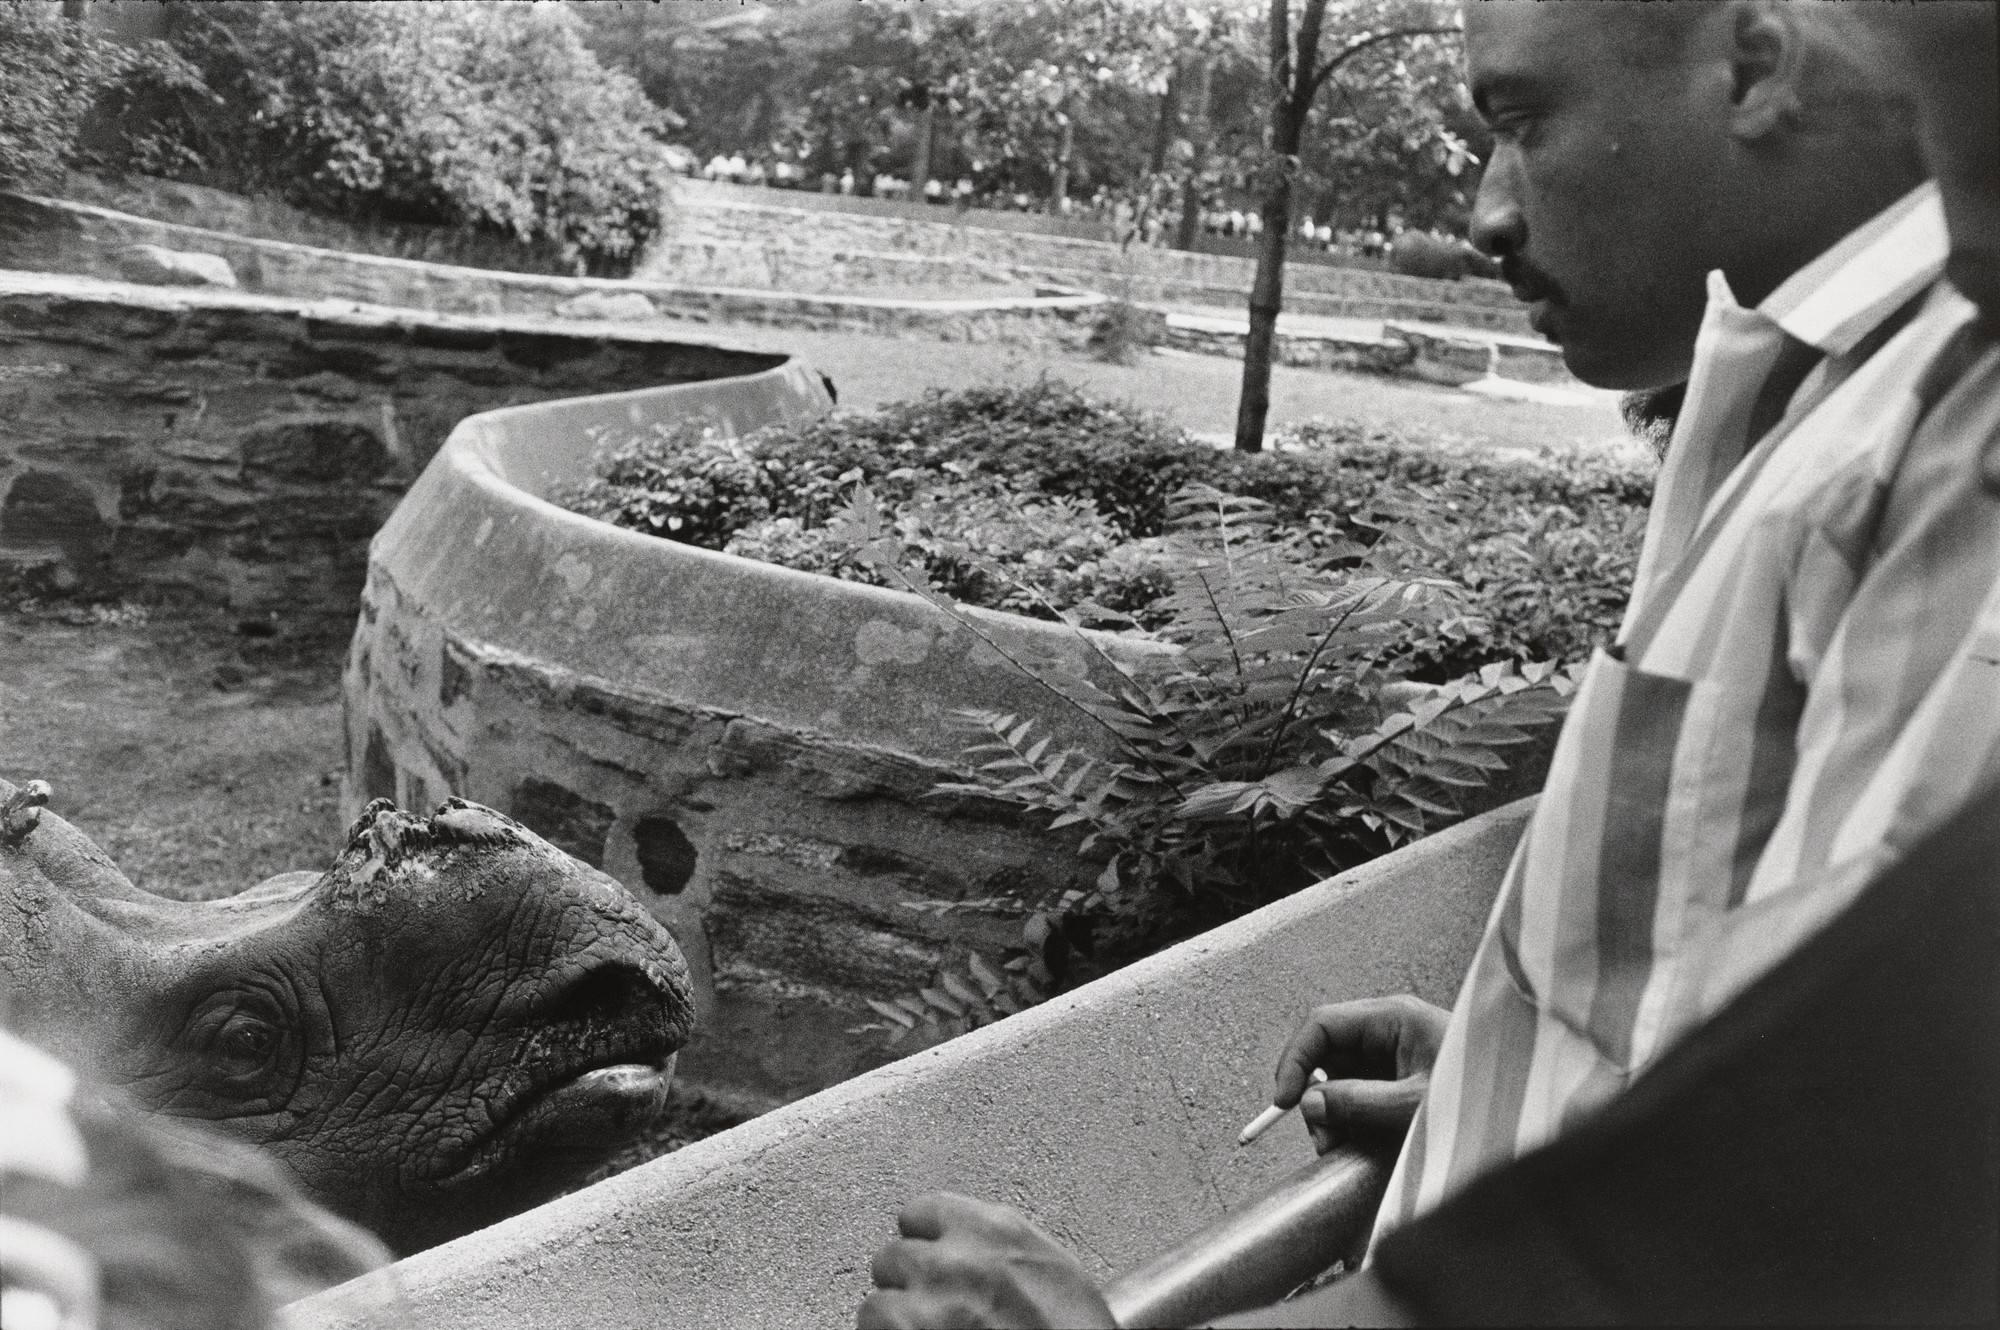 Garry Winogrand. Bronx Zoo, New York. 1963